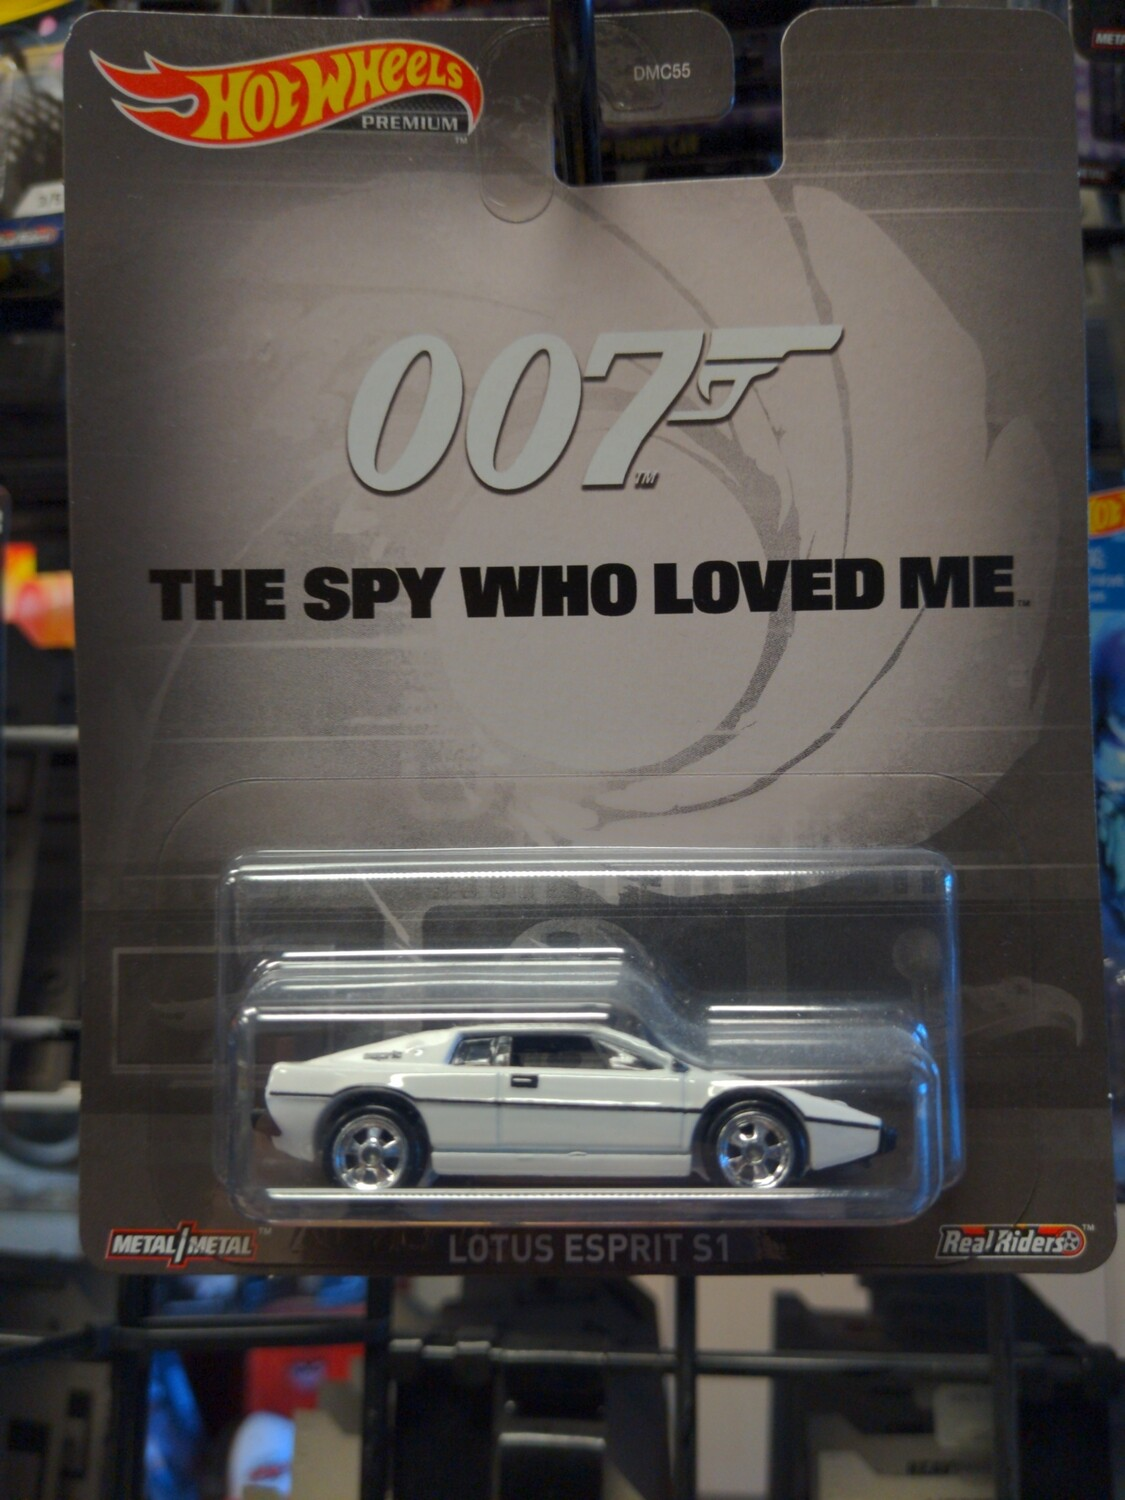 Hot Wheels - 007: The Spy Who Loved Me - Lotus Esprit S1